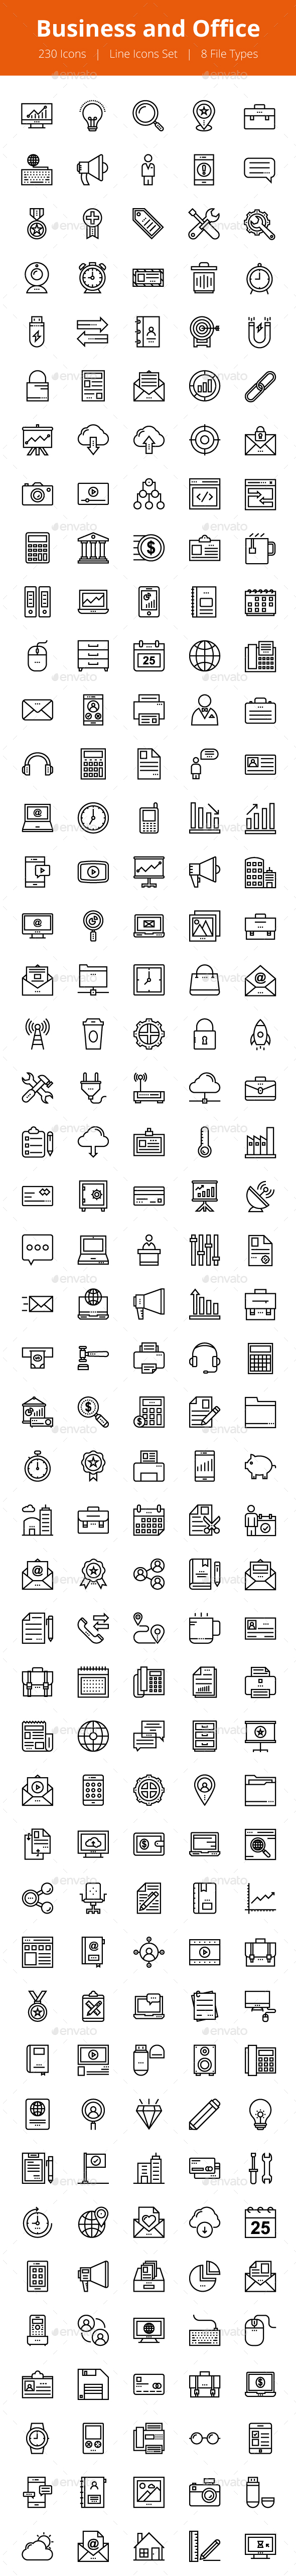 230 Business and Office Line Icons - Icons